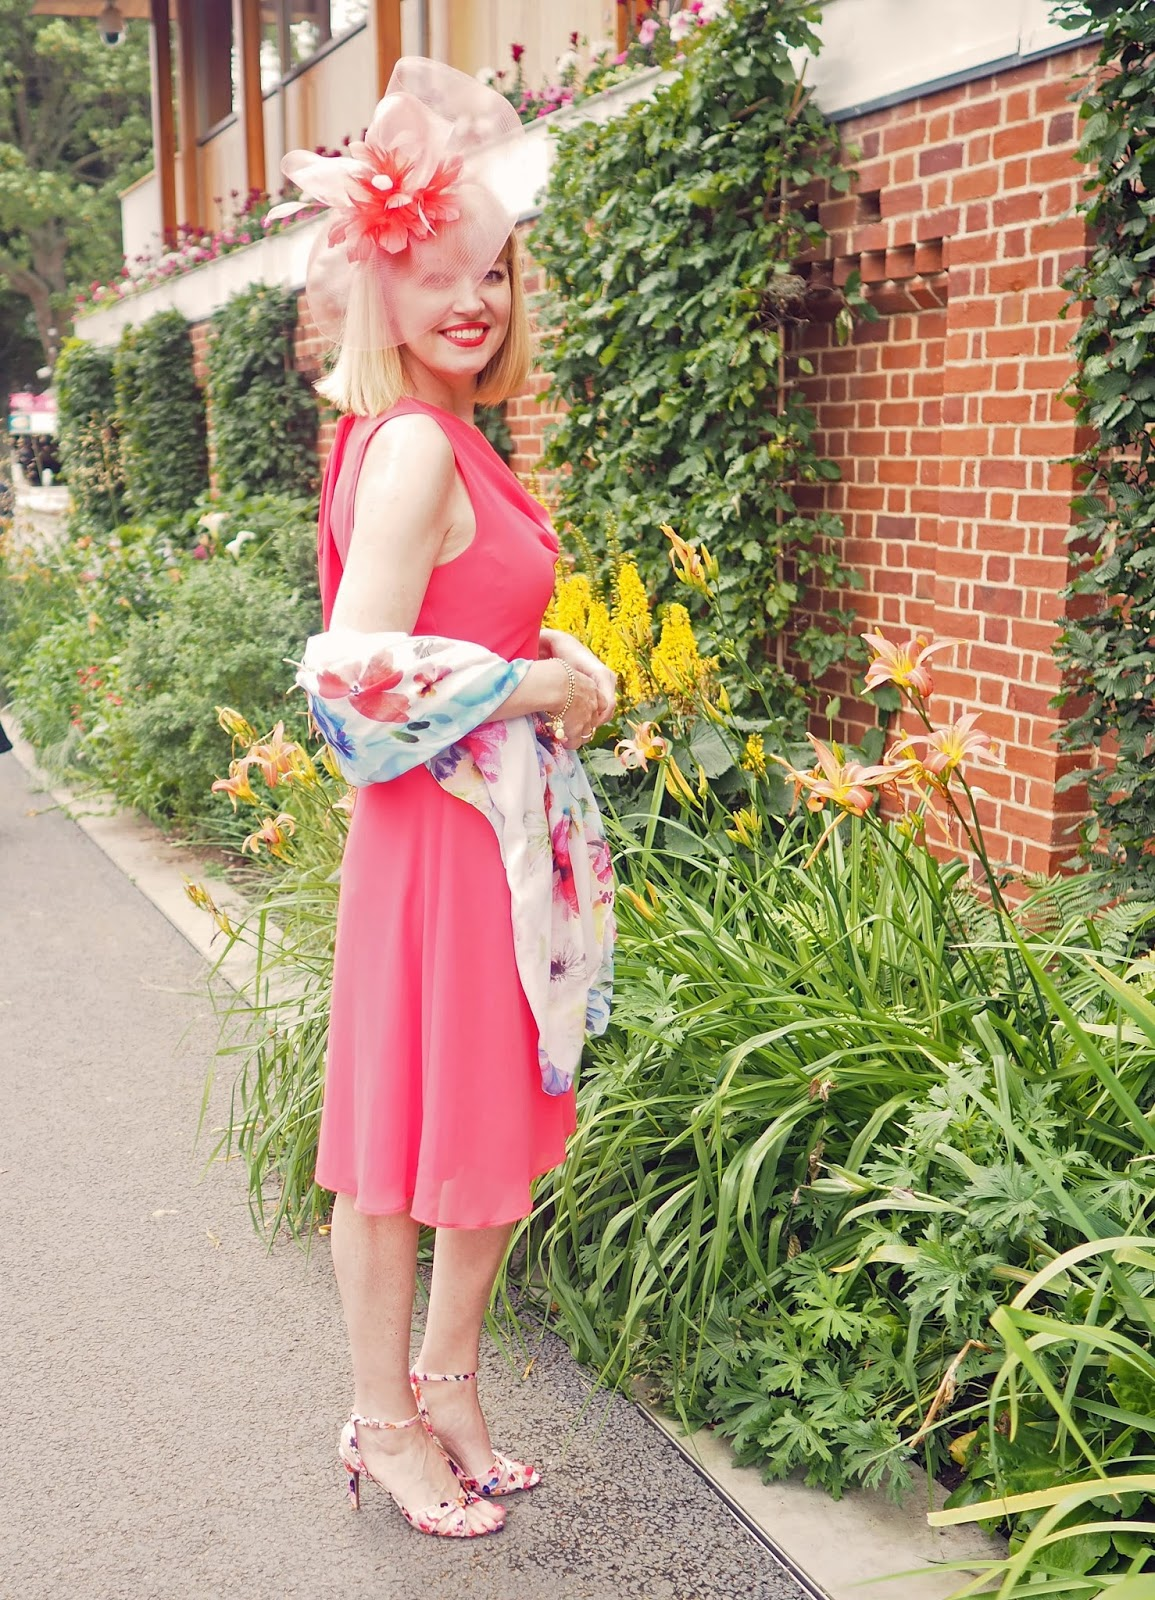 York-races-outfit-coral-dress-floral-scarf-fascinator-floral-sandals